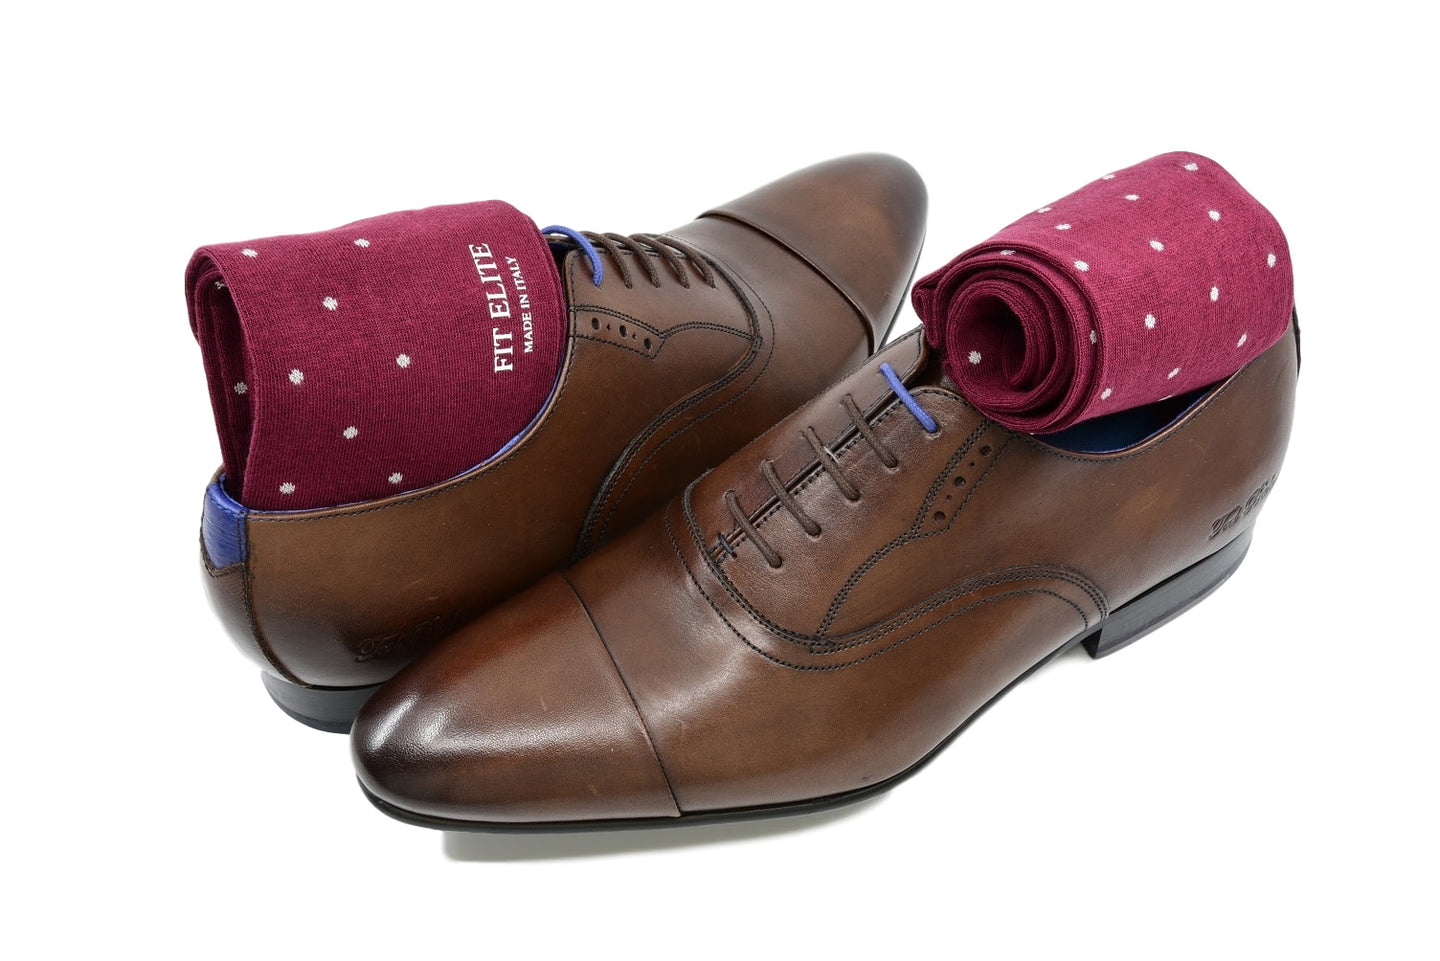 Men's burgundy dress socks with grey polka dots and brown shoes